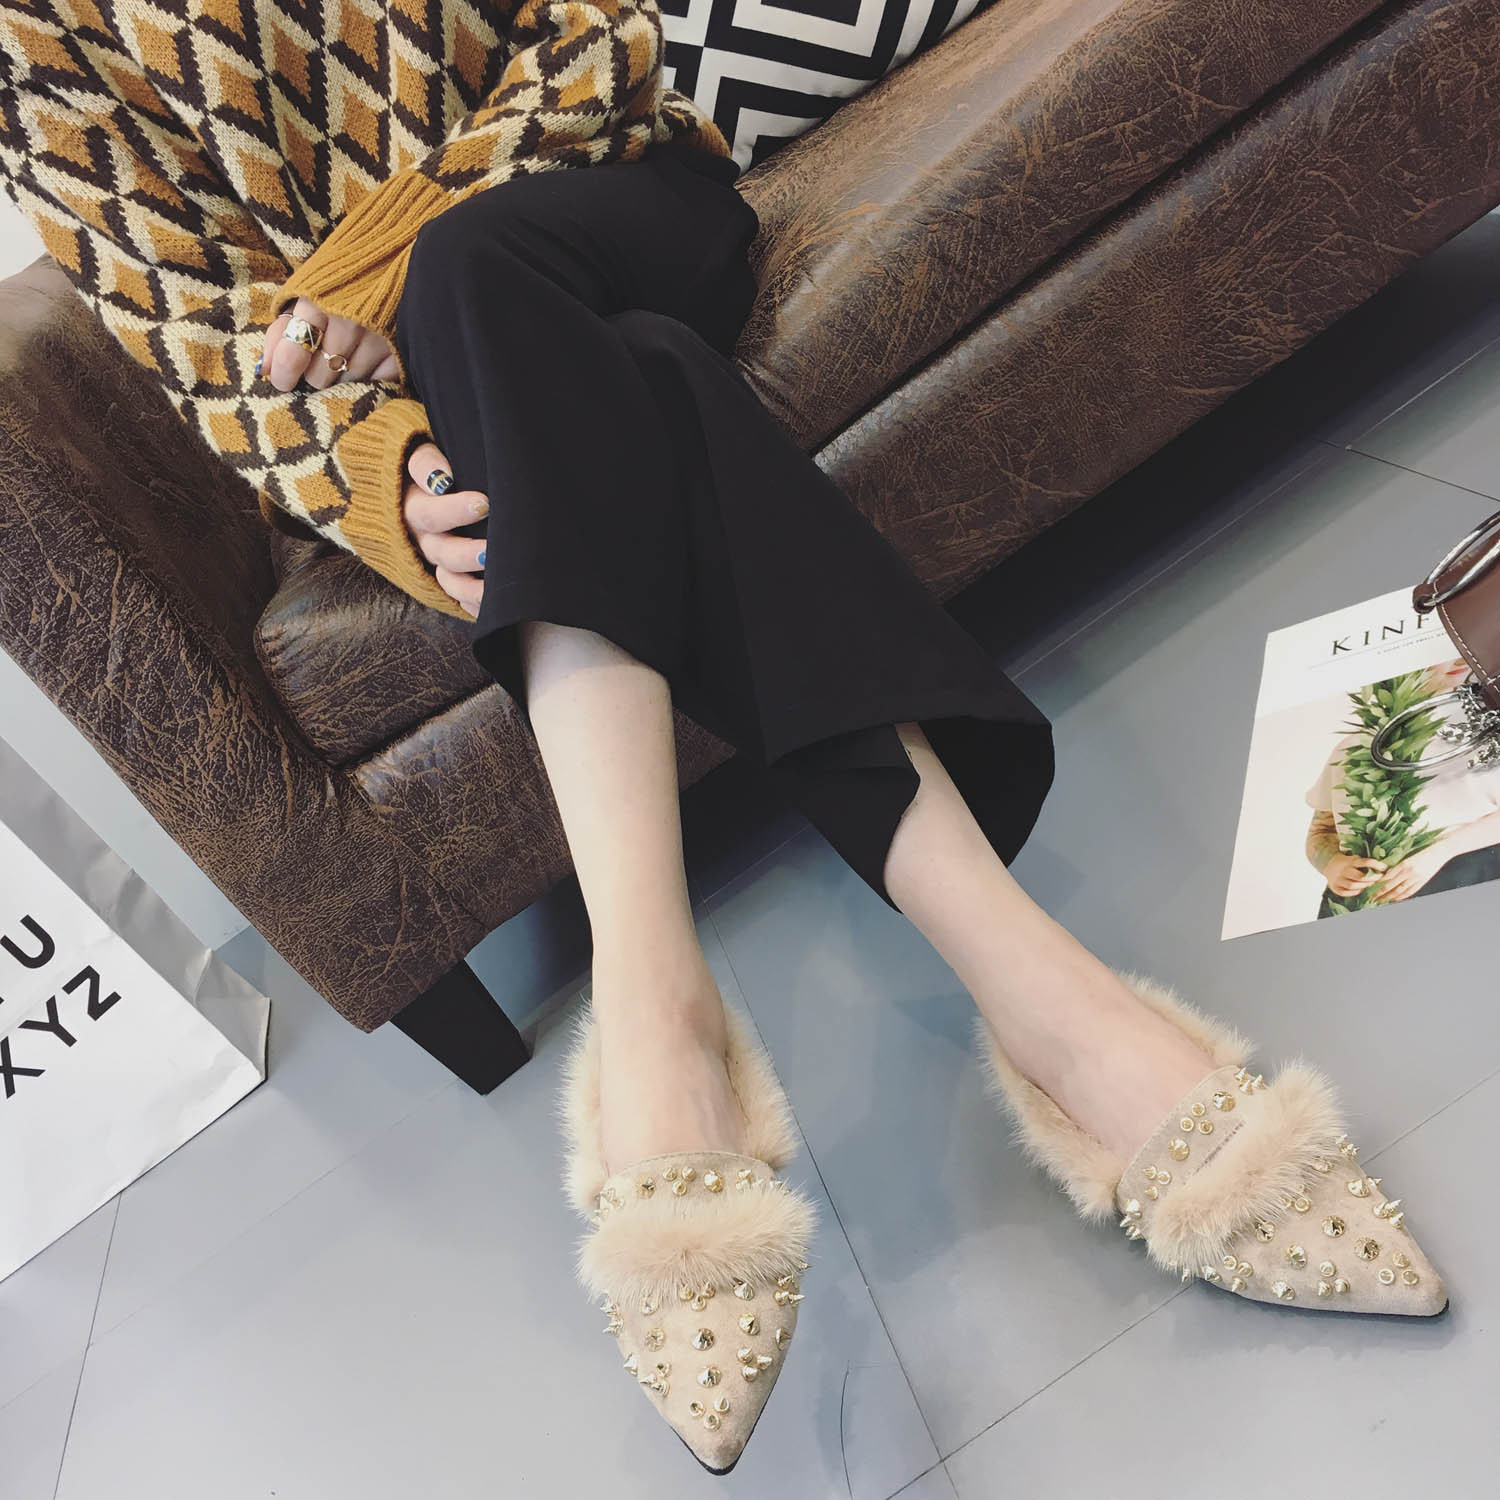 SWYIVY Shoes Flats Woman Fur Slip On Loafers Autumn